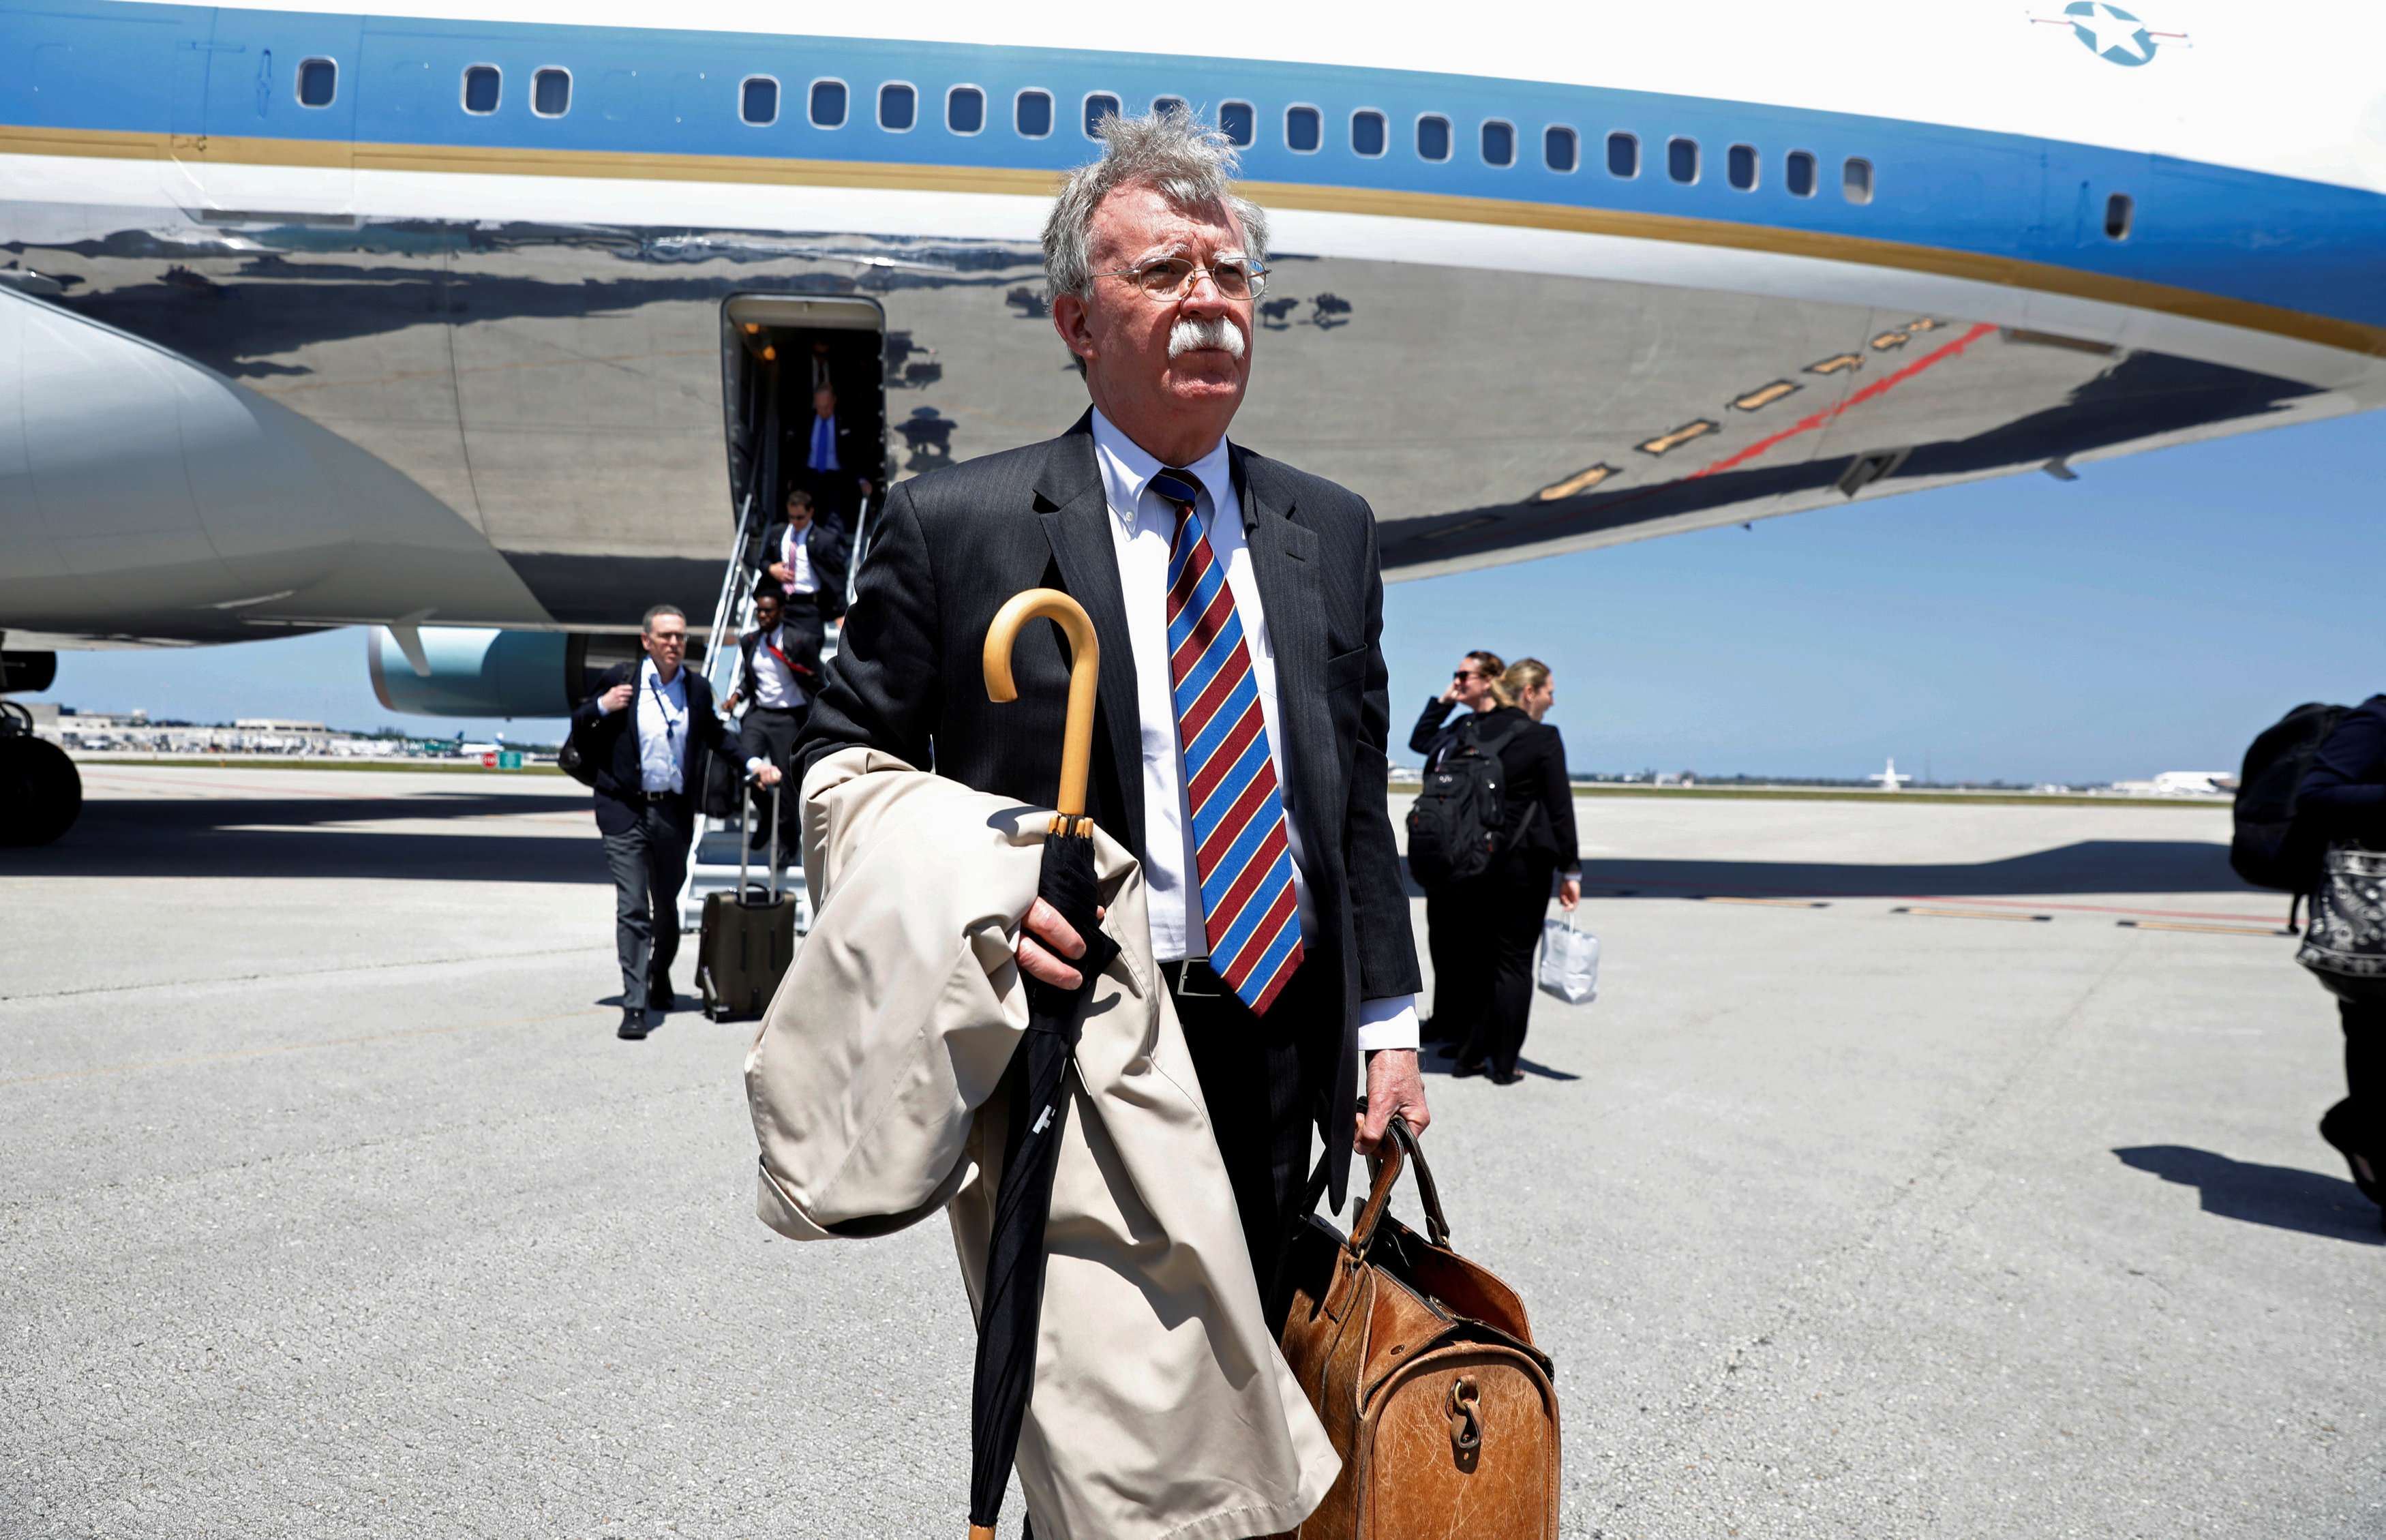 US national security adviser John Bolton steps from Air Force One upon arrival in West Palm Beach, Florida, last  April 16. (Reuters)